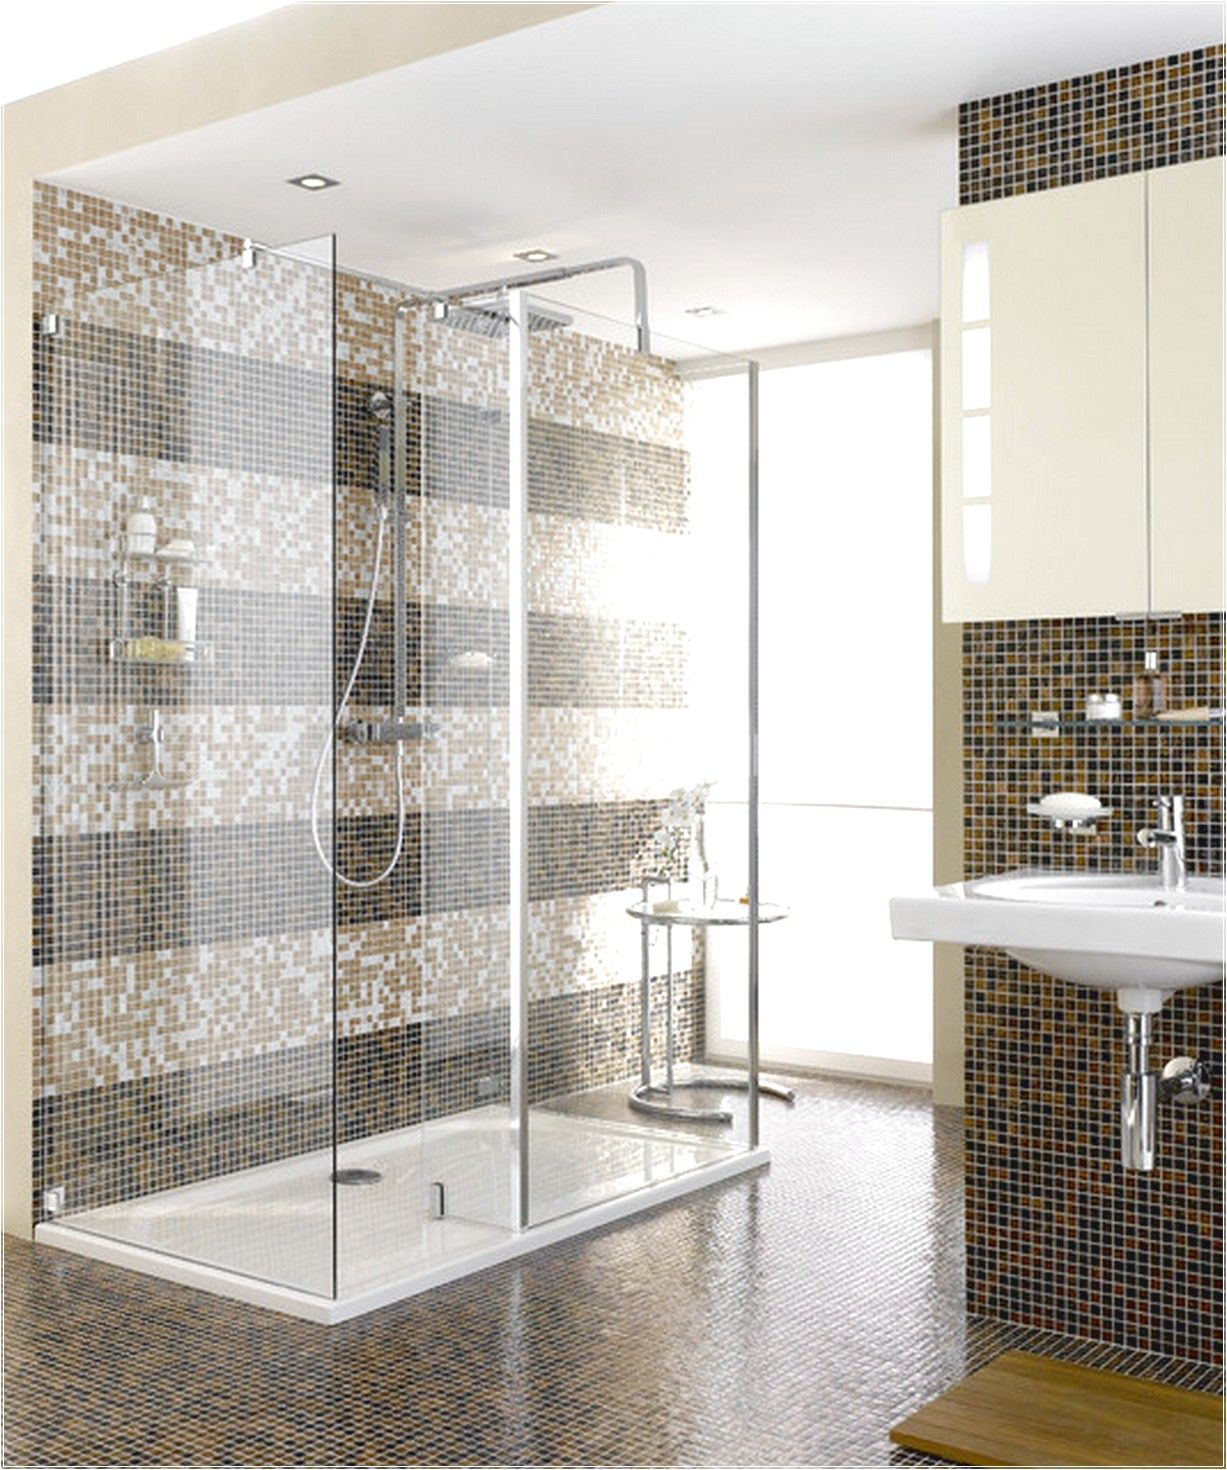 bathroom classic bathroom design with glass shower room stylish tile design ideas - Bath Shower Tile Design Ideas